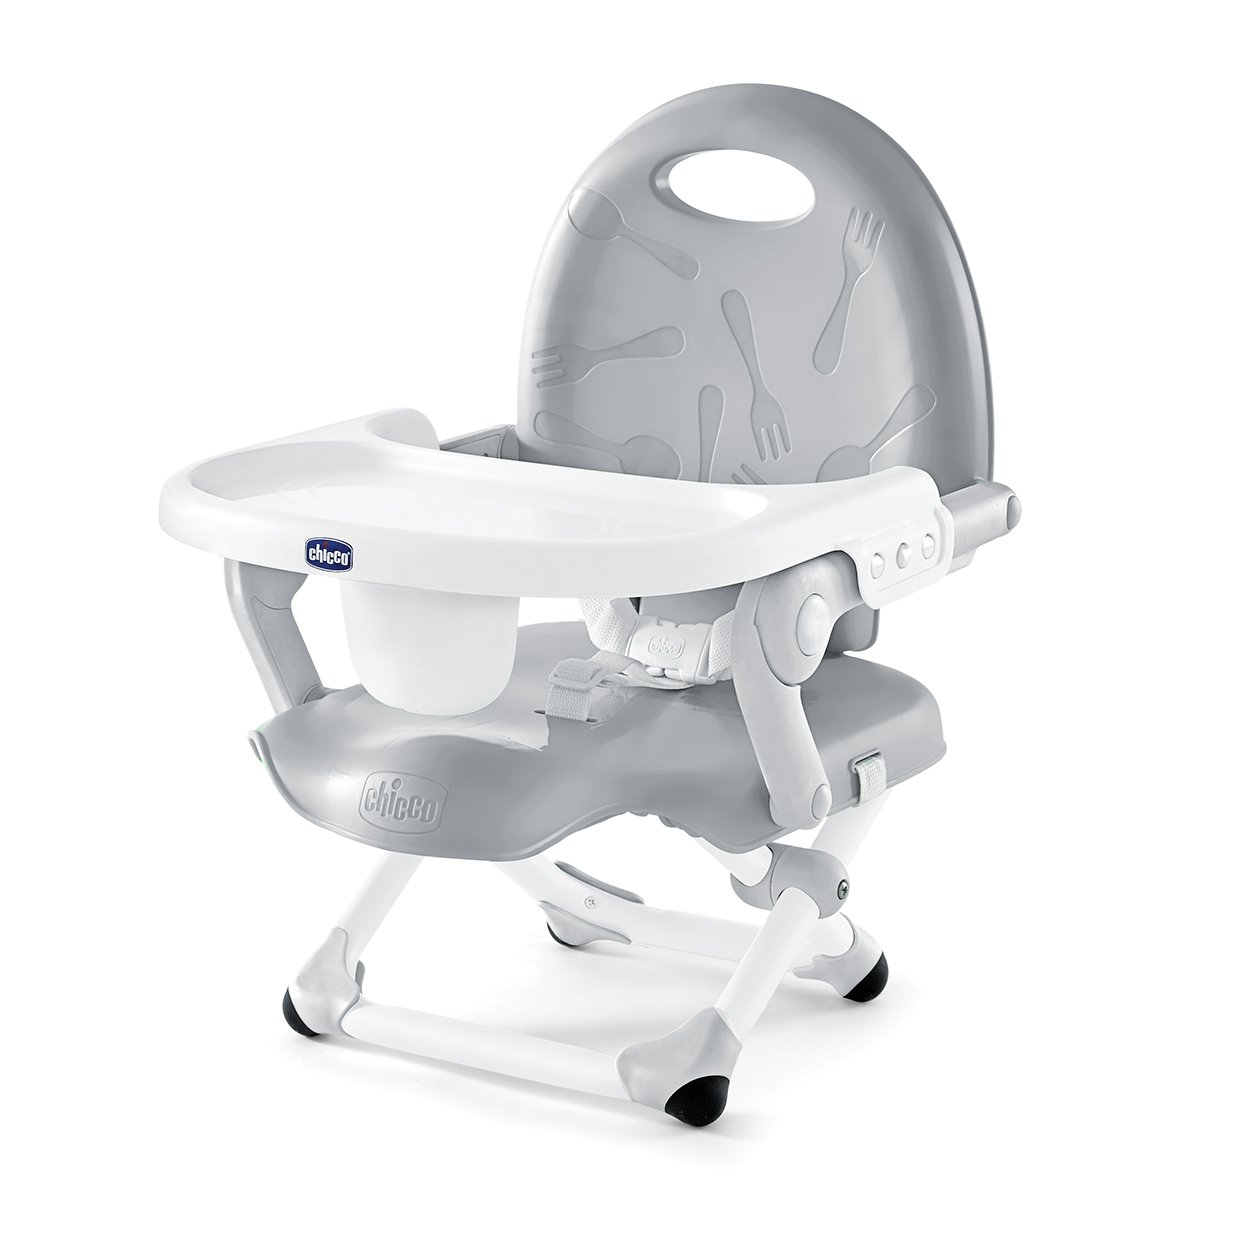 Chicco Pocket Snack Booster Seat, Grey by Chicco